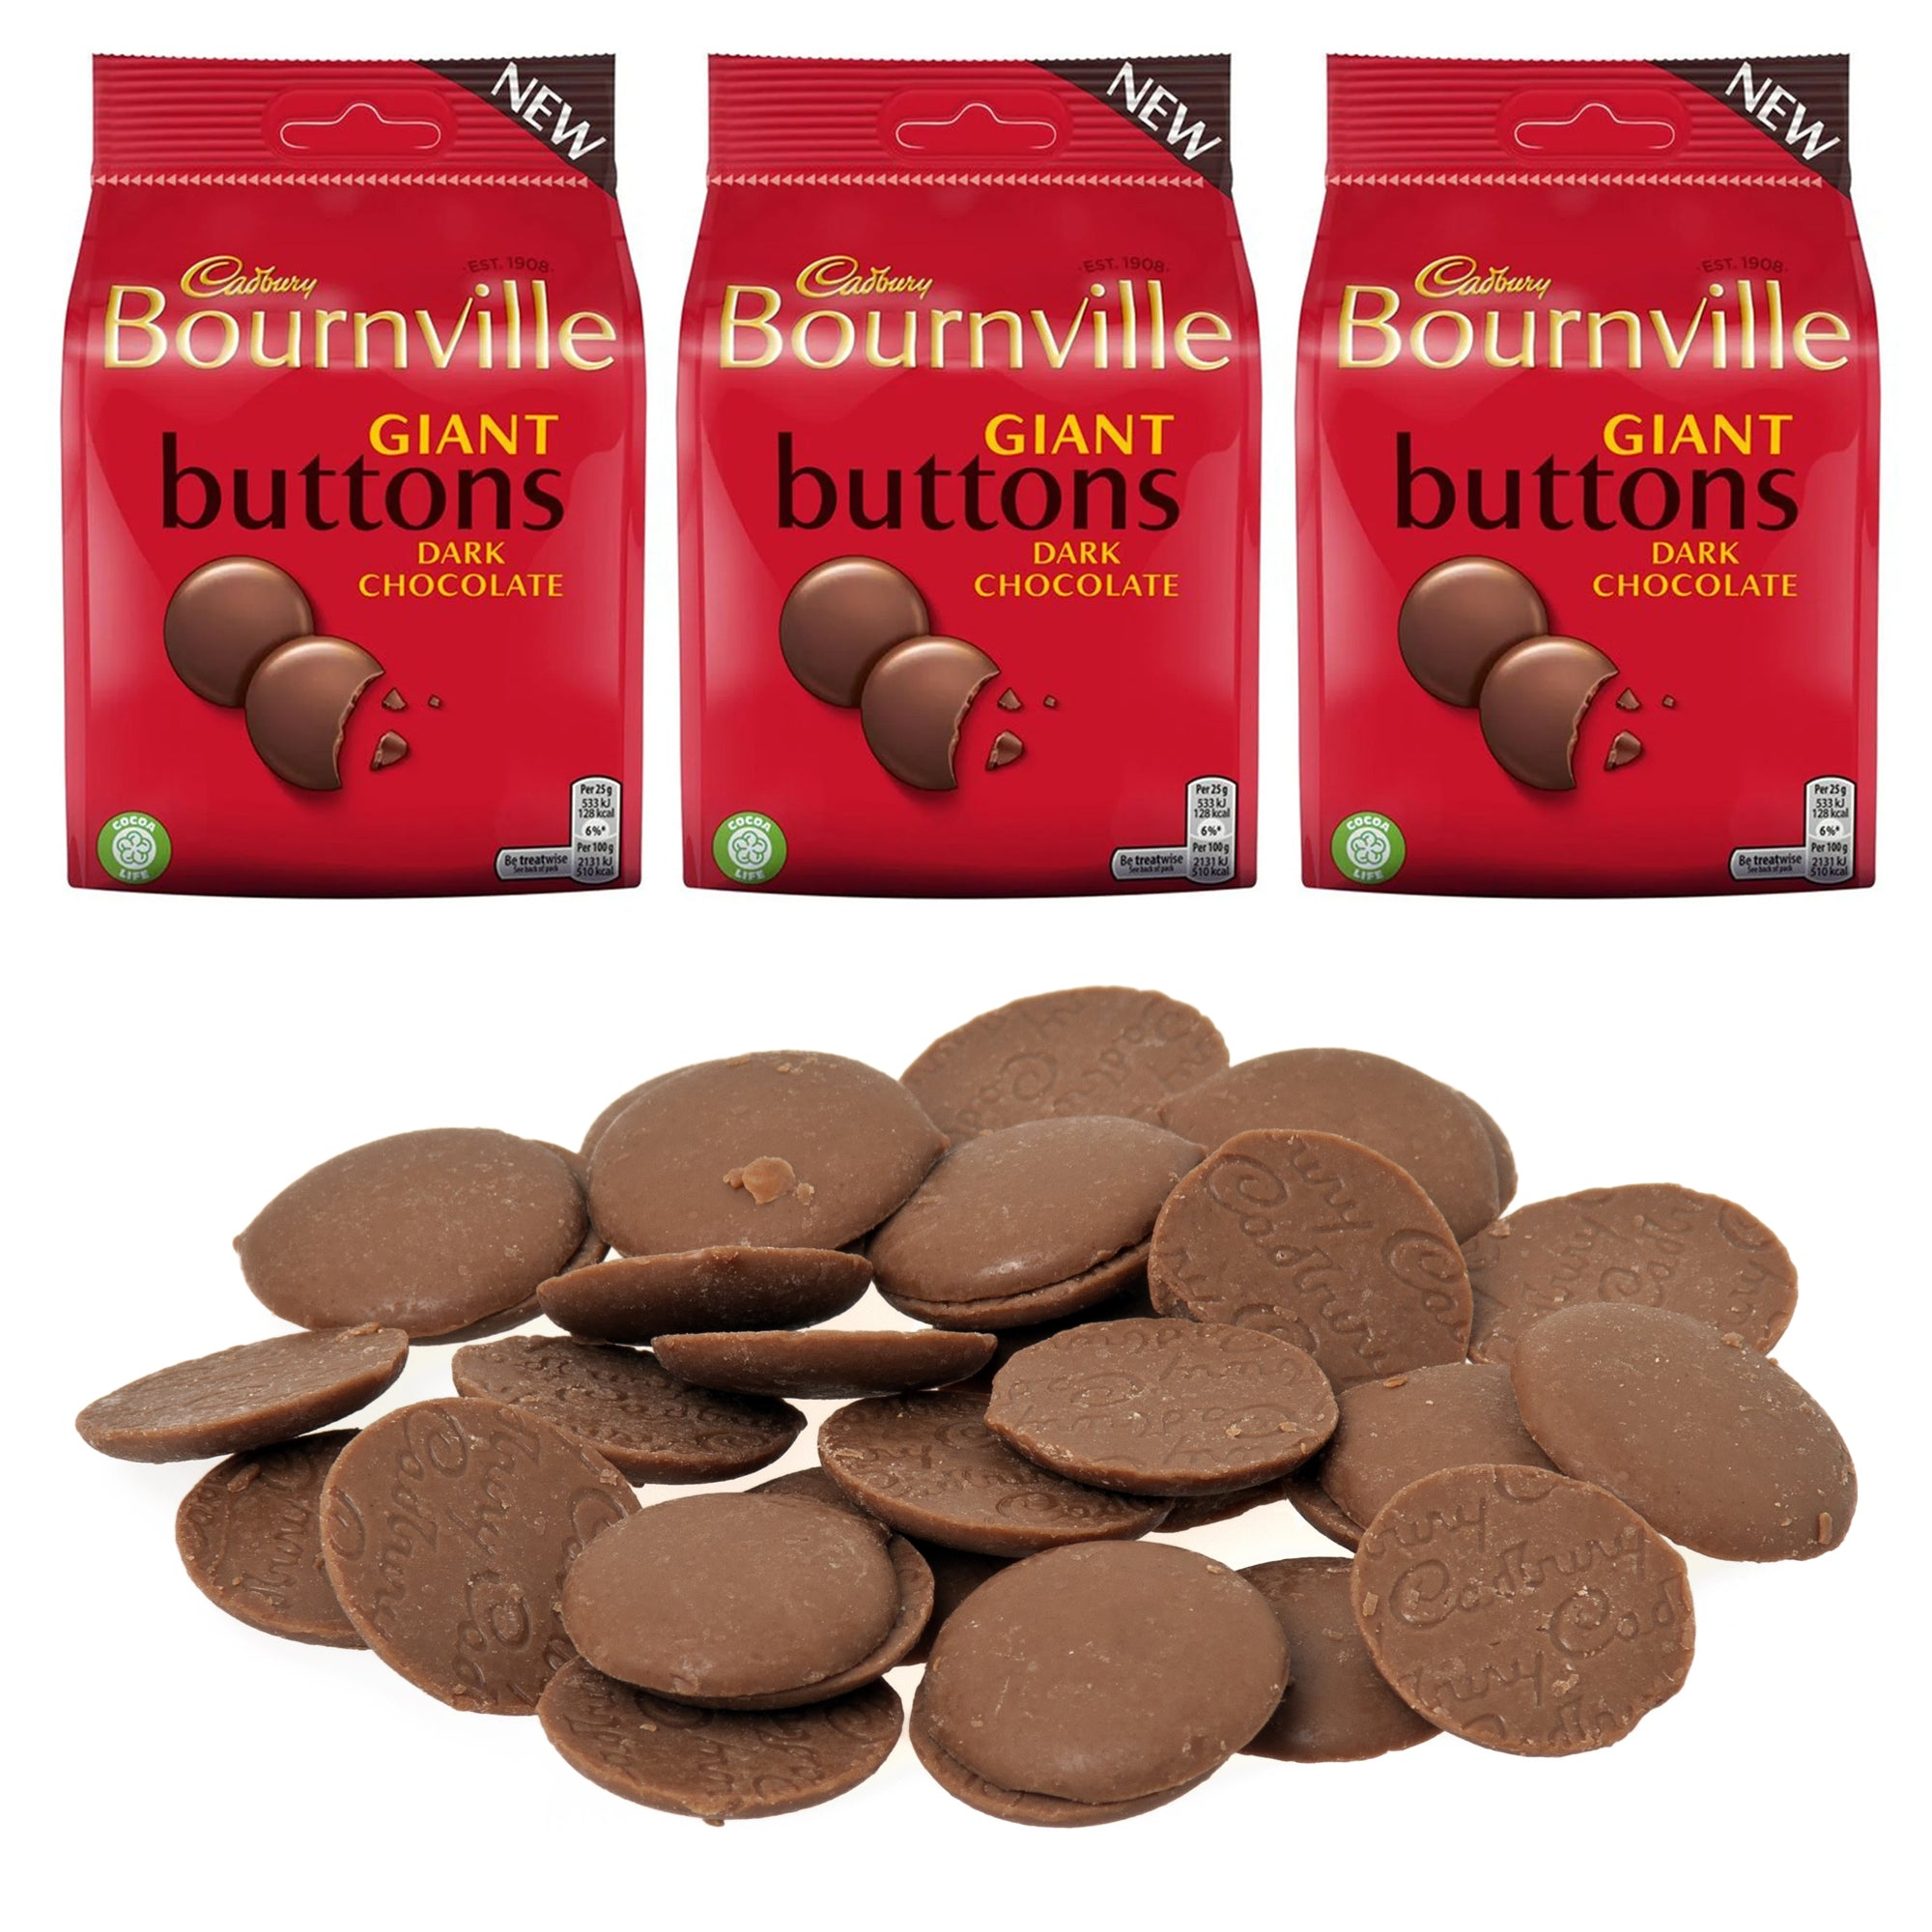 Cadbury Bournville Giant Buttons Dark Chocolate 95g, Food Items by TradeNRG